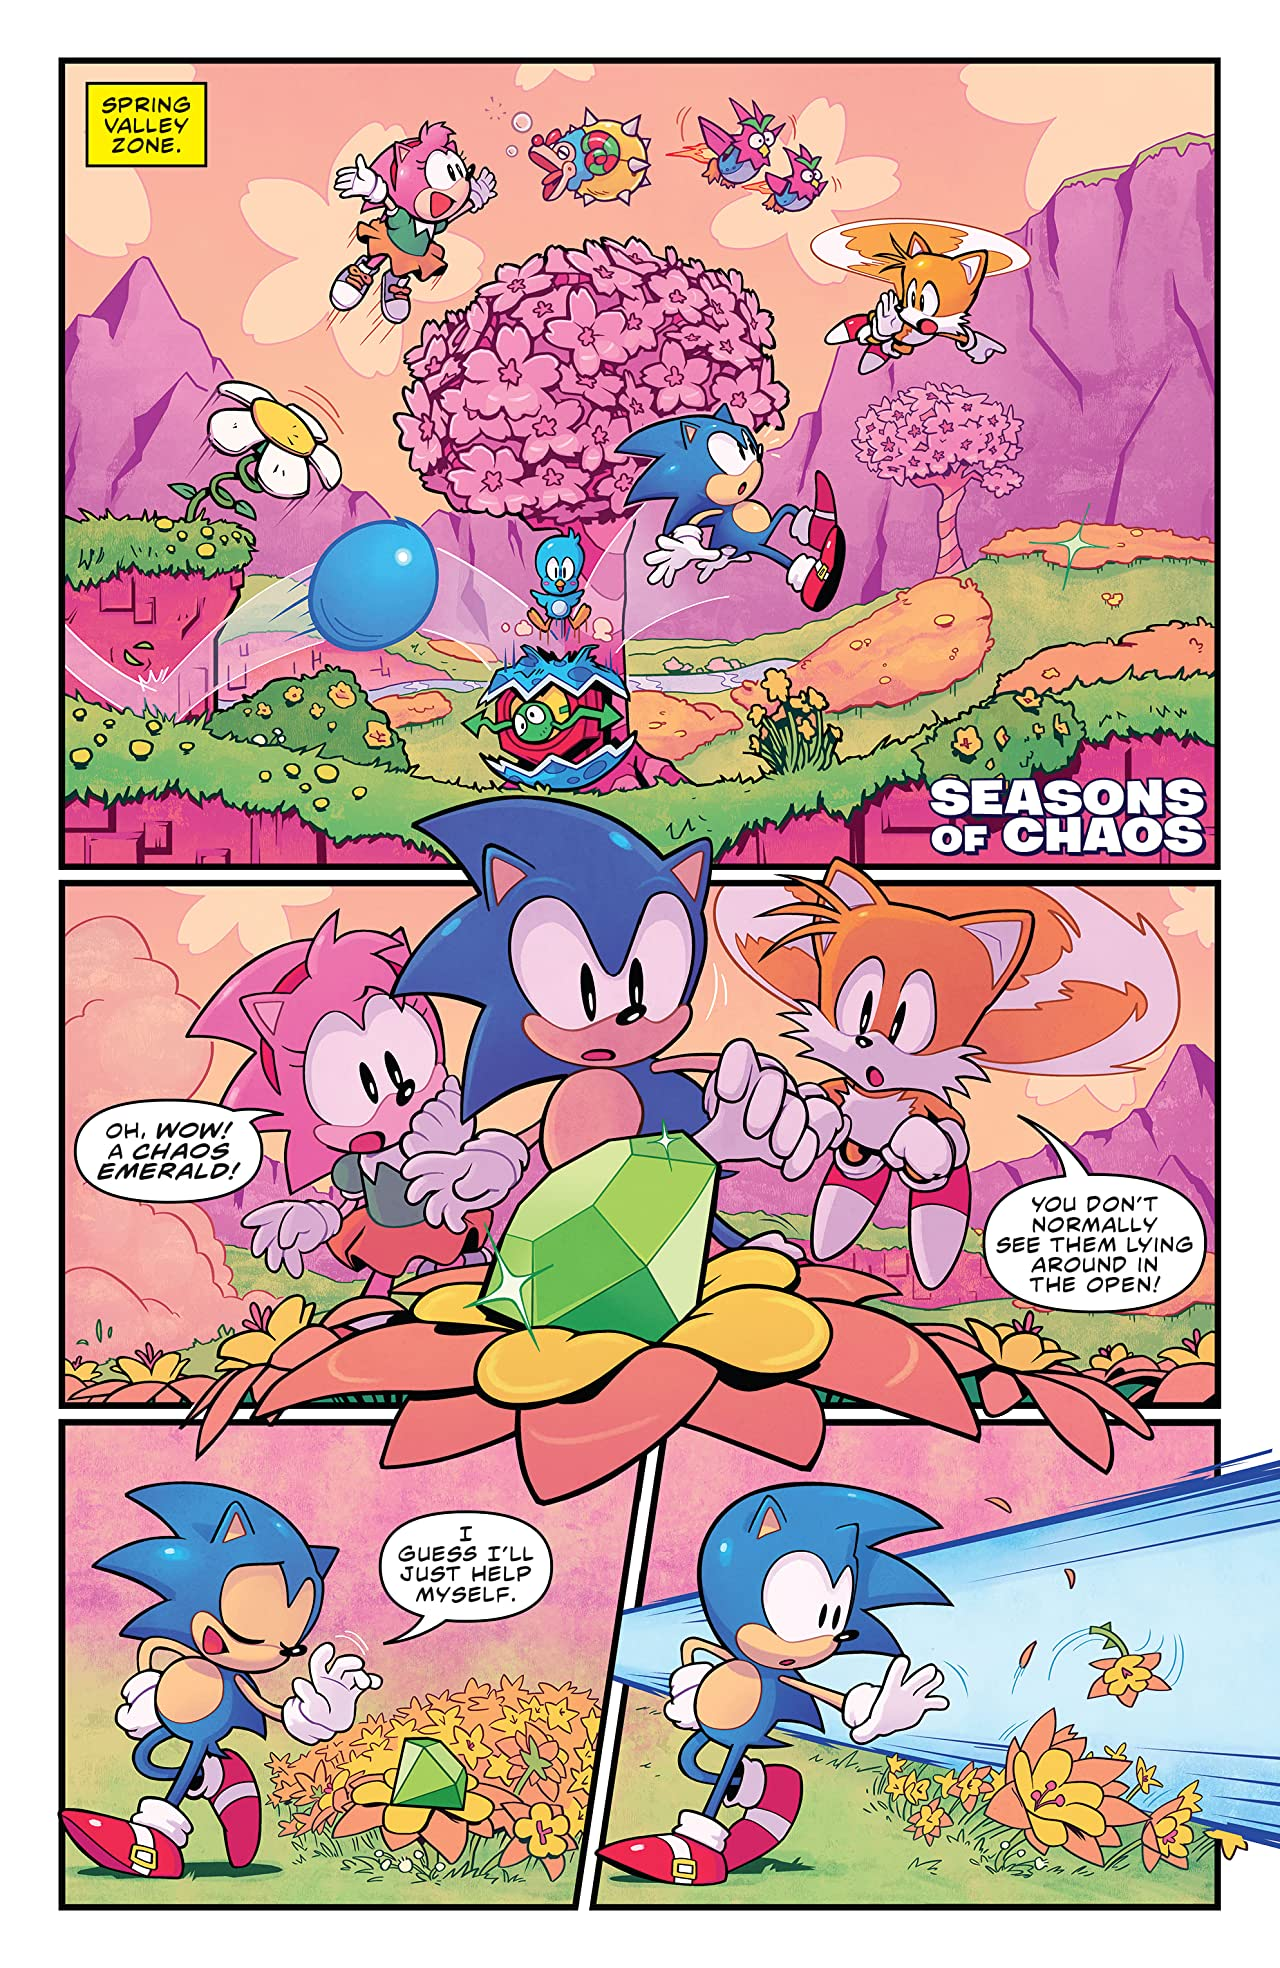 Sonic the Hedgehog 30th Anniversary Special